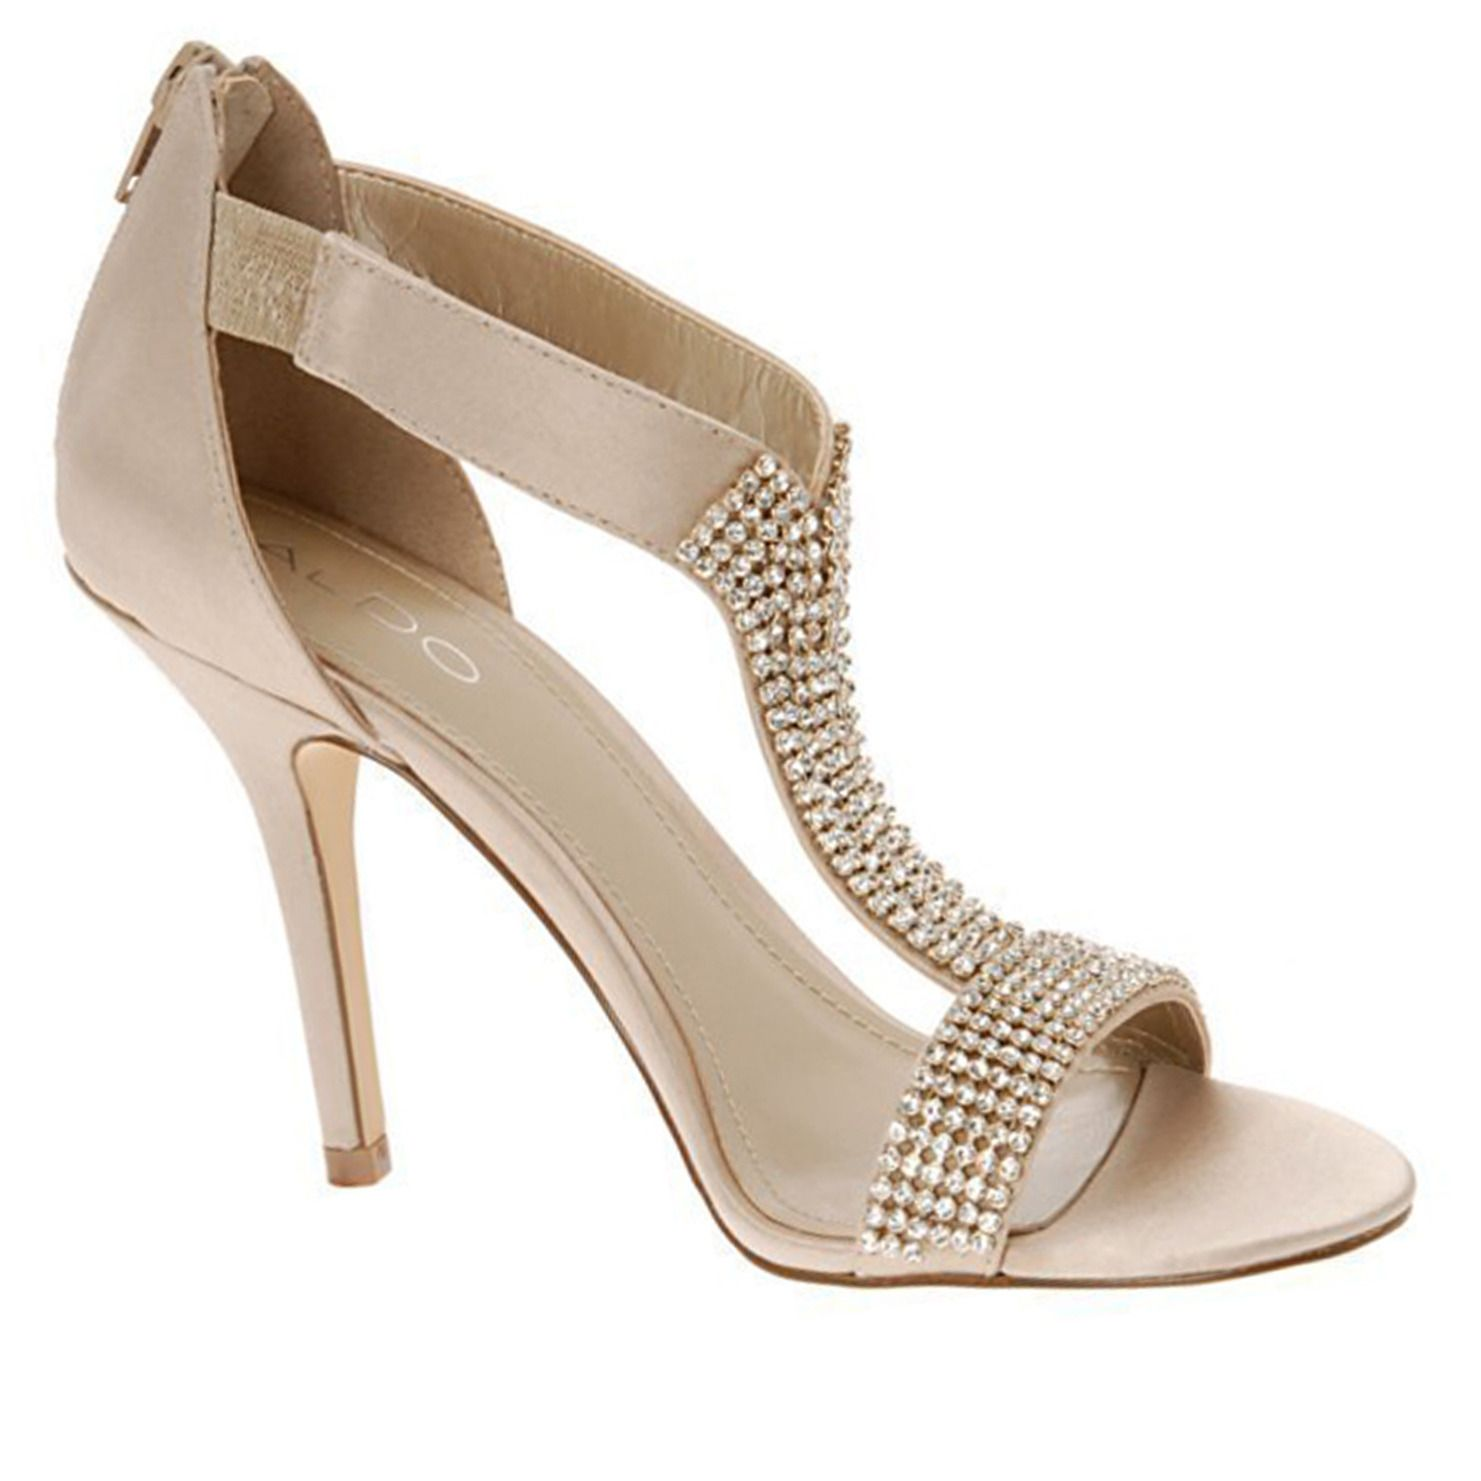 Women's Special Occasion Sandals For Sale At ALDO